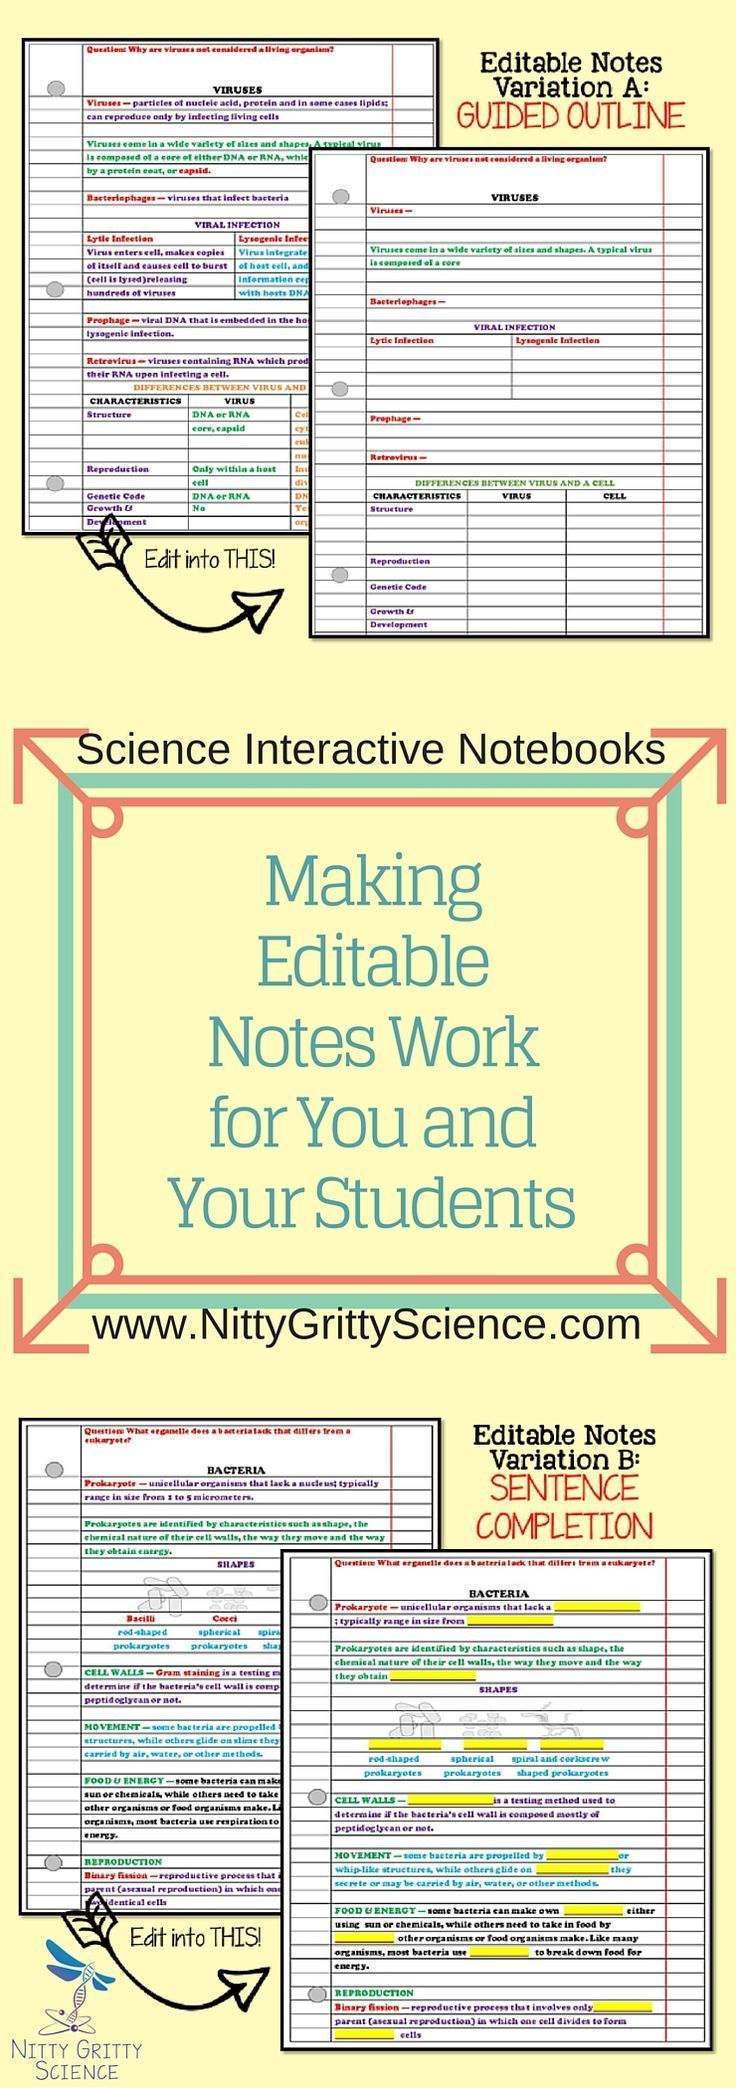 Editable Interactive Science Notebooks: Variation A is a guided outline and Variation B features a sentence completion strategy.  Choose one version that works for you, or use both if you feel some students need differentiation.  Guided notes provide a framework of the content but leave out key vocab or main ideas that students are responsible for.  They can either find the missing information through research, or by listening to the teacher as a lecture progresses.